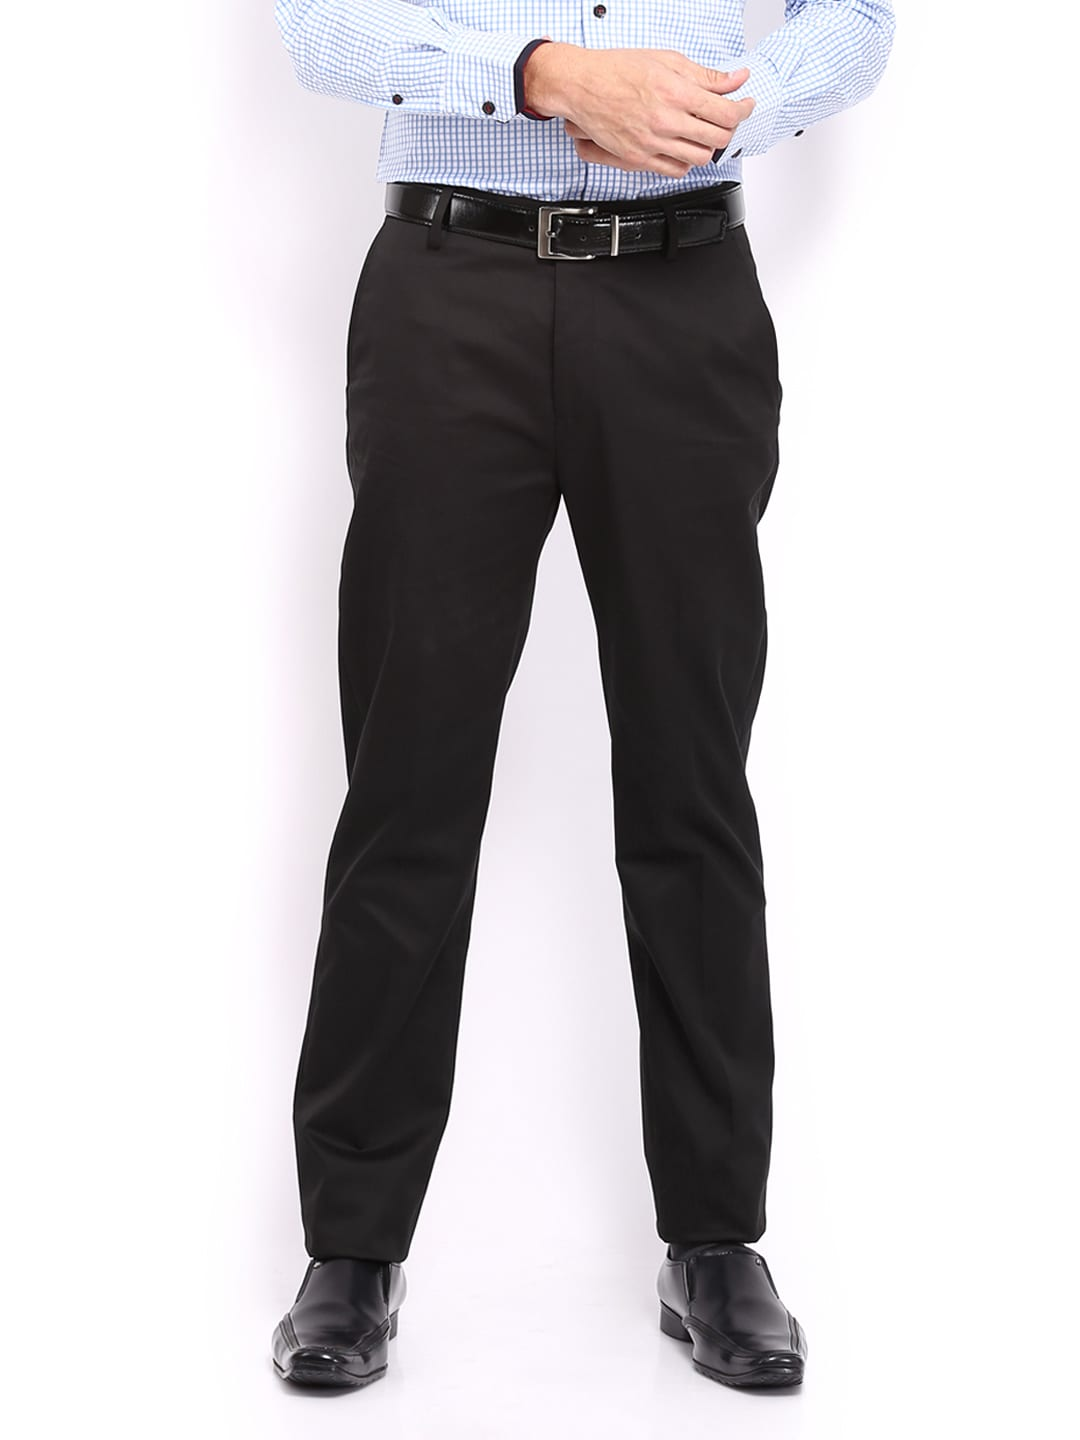 U.S Polo Assn. Men Black Tapered Fit Trousers